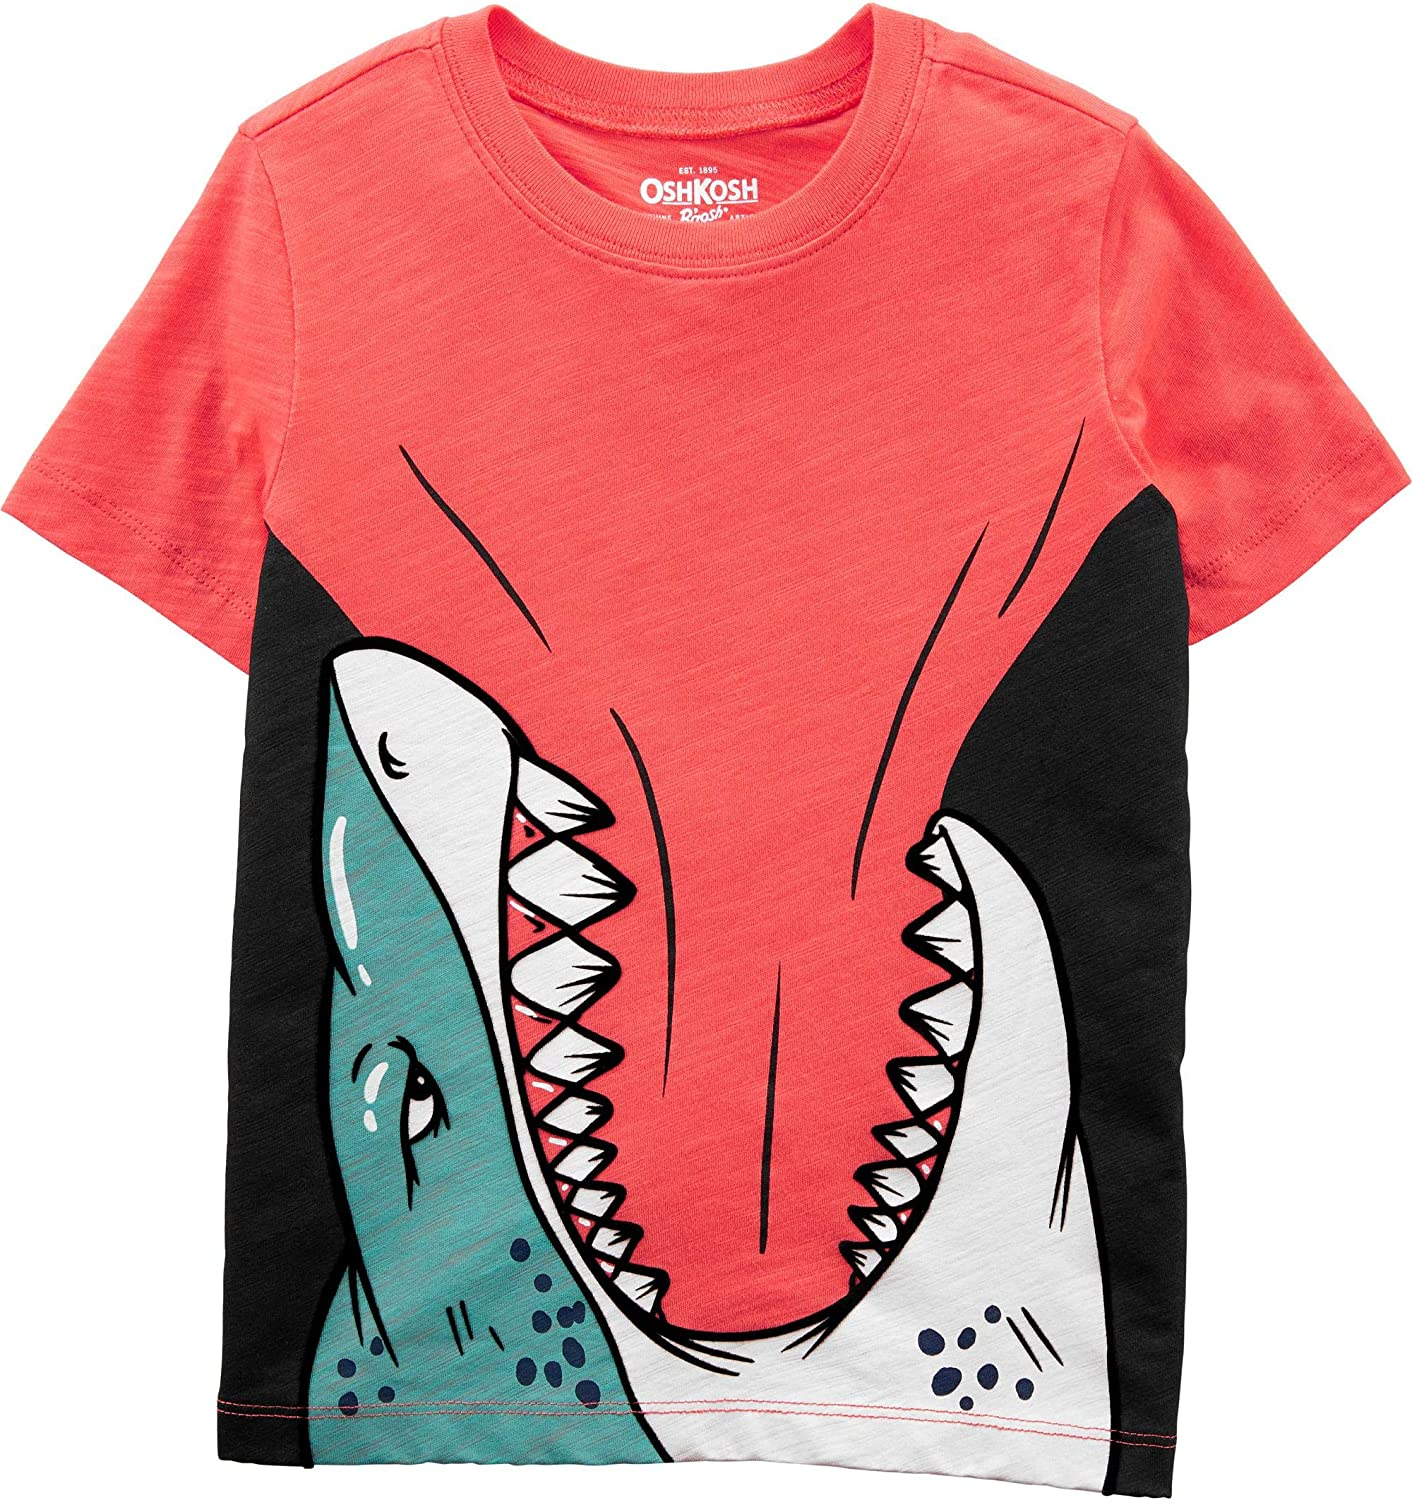 OshKosh B'Gosh Boys' Short Sleeve Tee